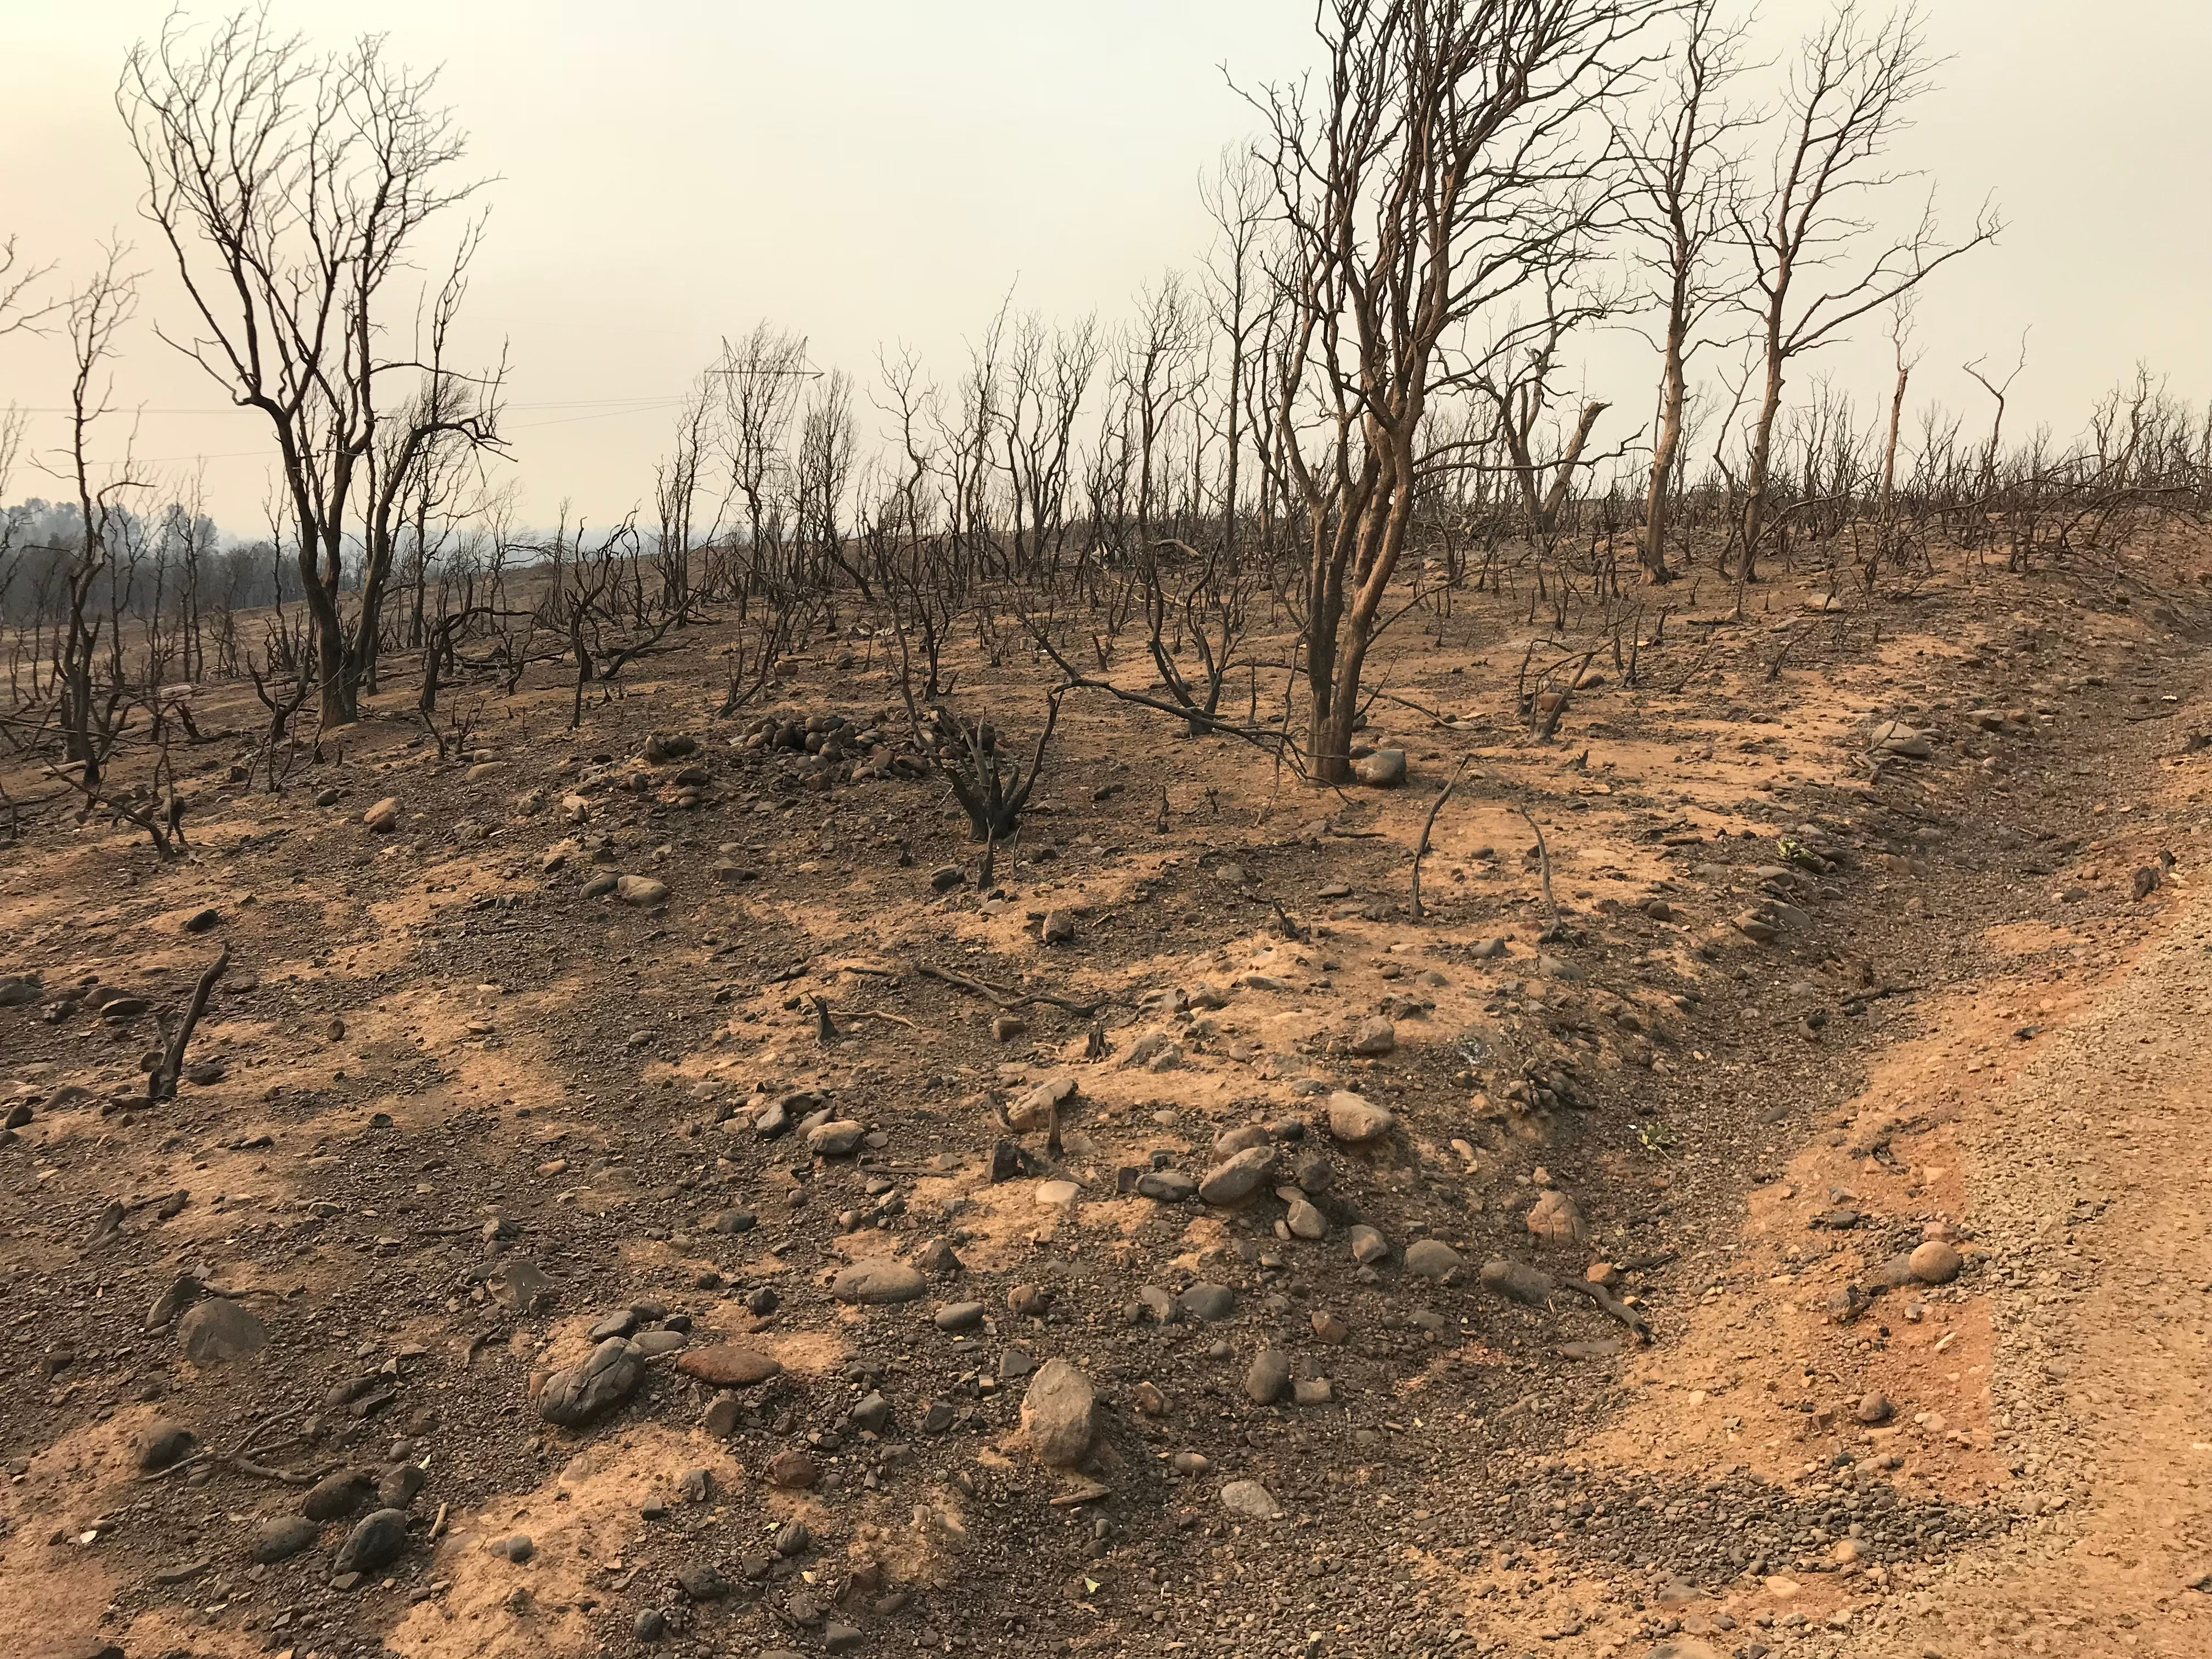 In some places the Carr Fire killed off all plants on hillsides, removing the vegetation that holds soil in place during rains and creating erosion concerns.